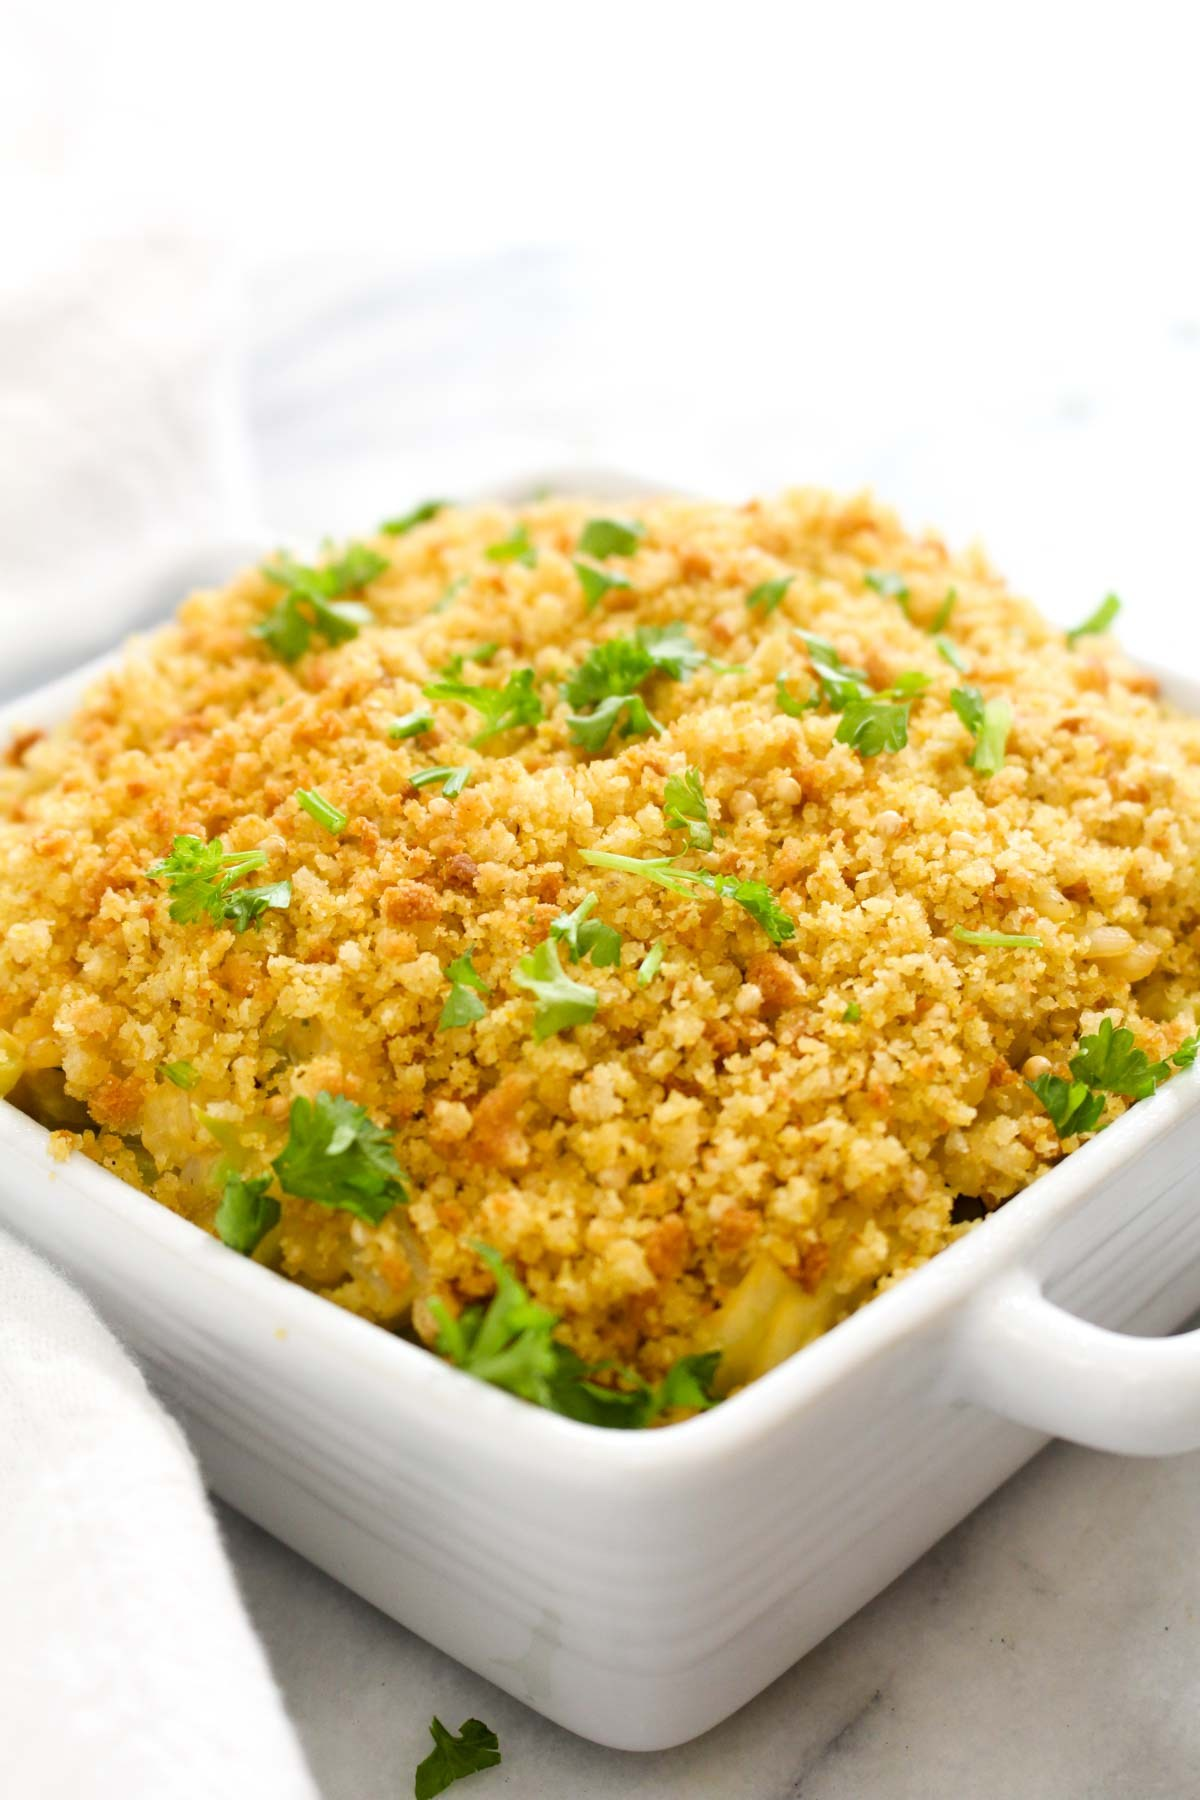 Vegan cheesy broccoli rice casserole